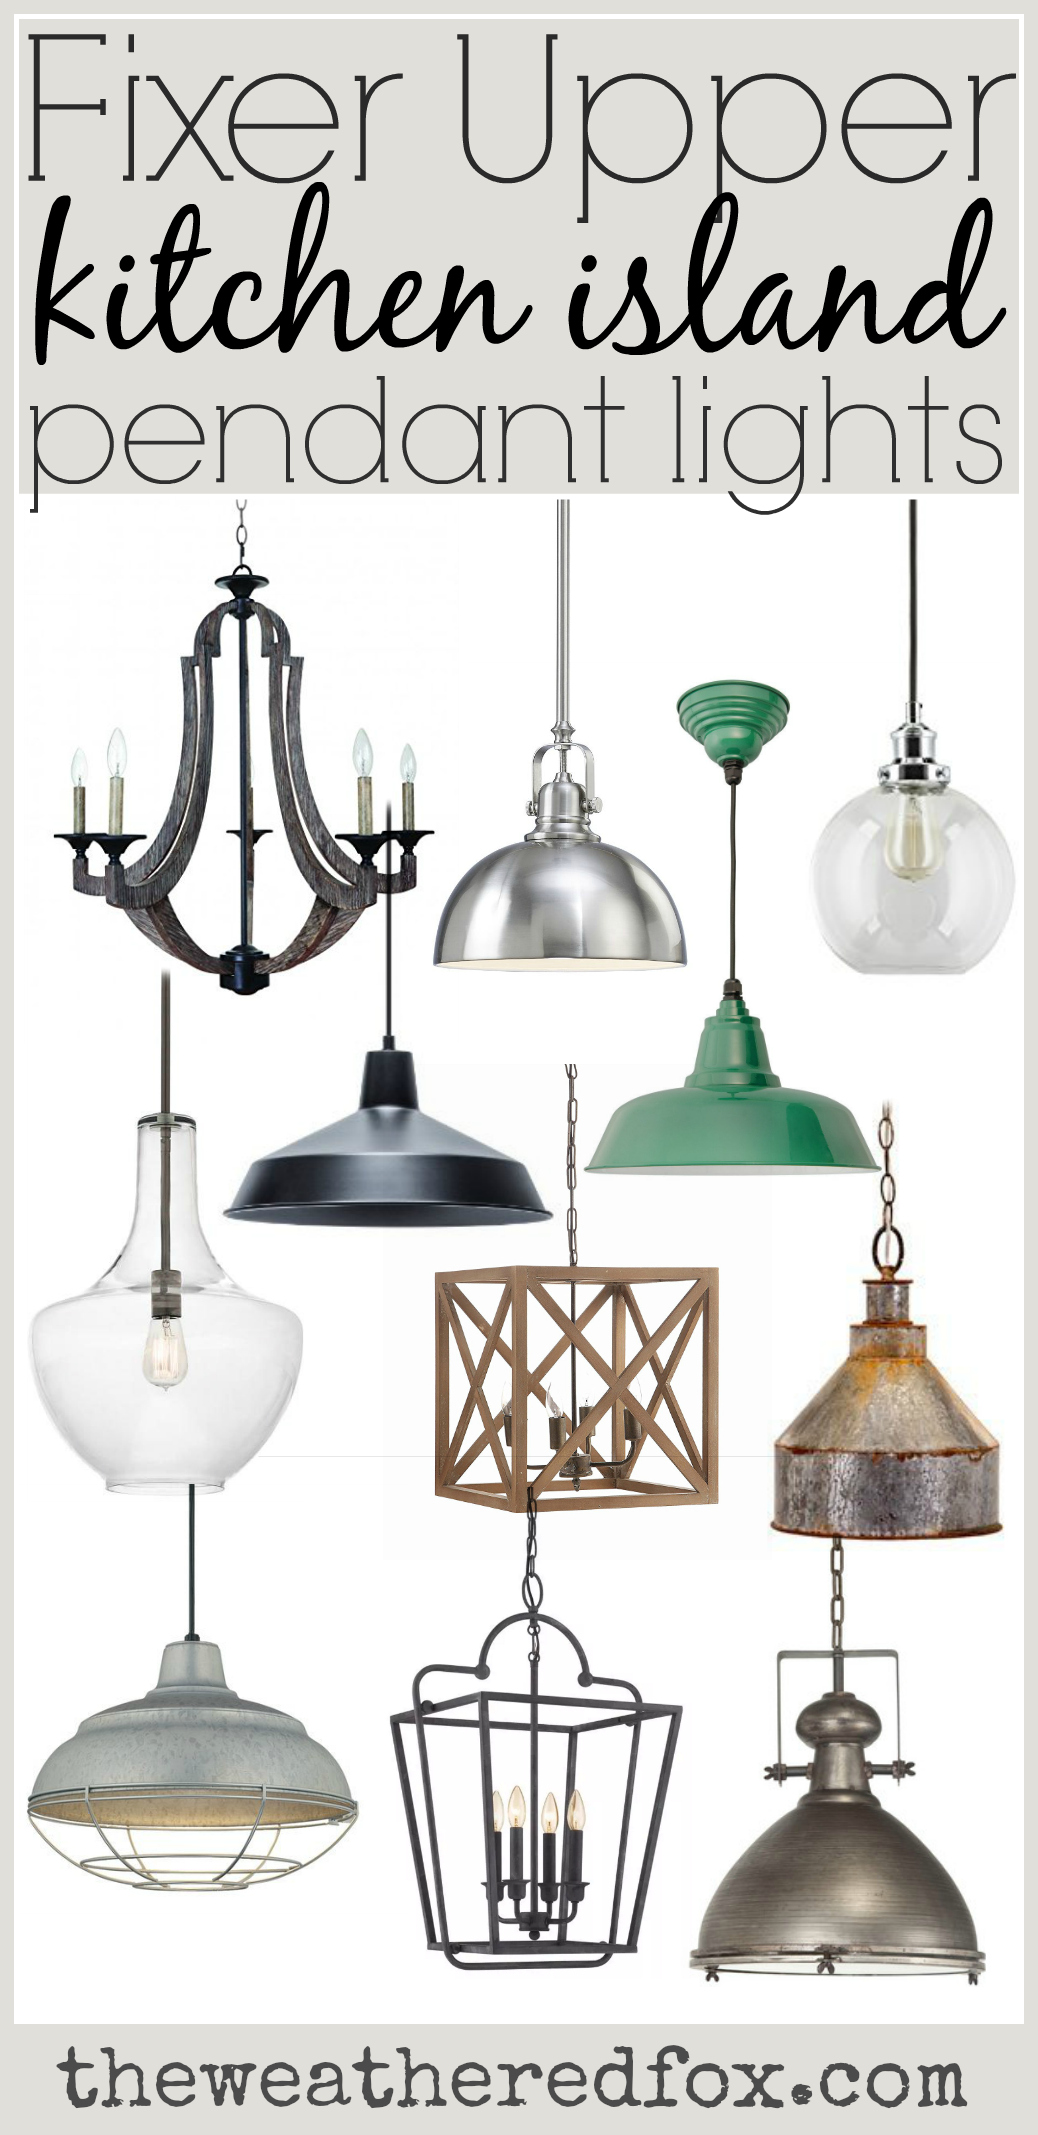 Fixer Upper Kitchen Island Pendant Lighting